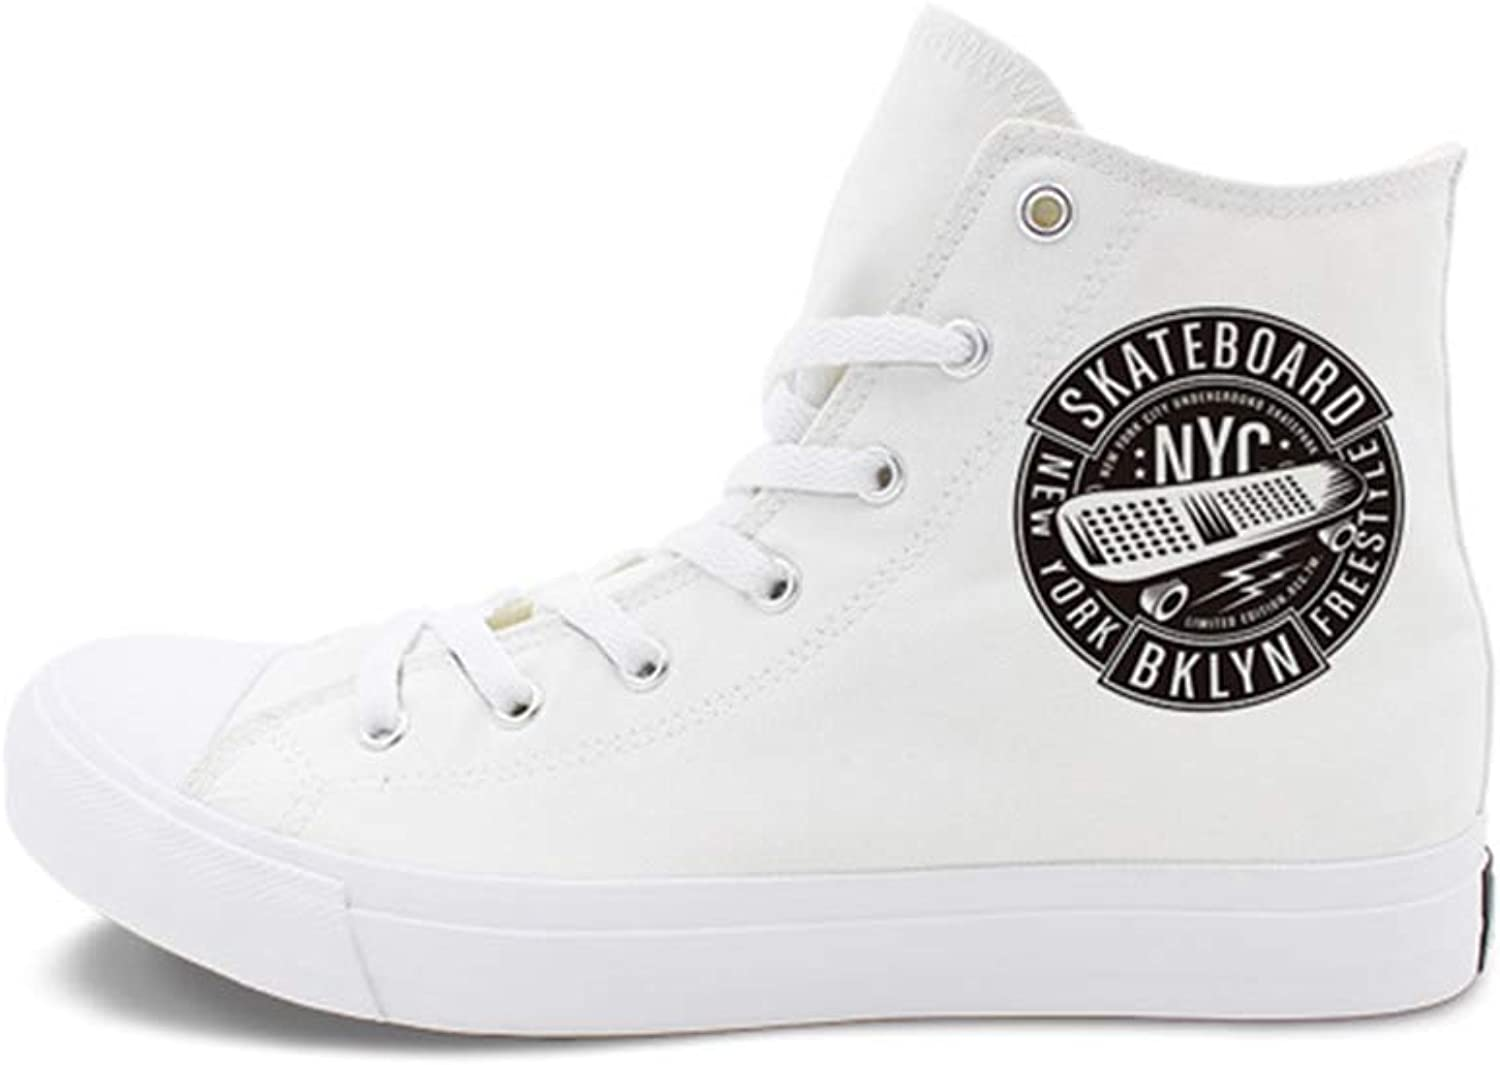 Unisex shoes Spring & Fall Canvas Cycling shoes Fashion Street Dance shoes Unisex Sneakers Non-Slip Vulcanized shoes (color   White, Size   49)